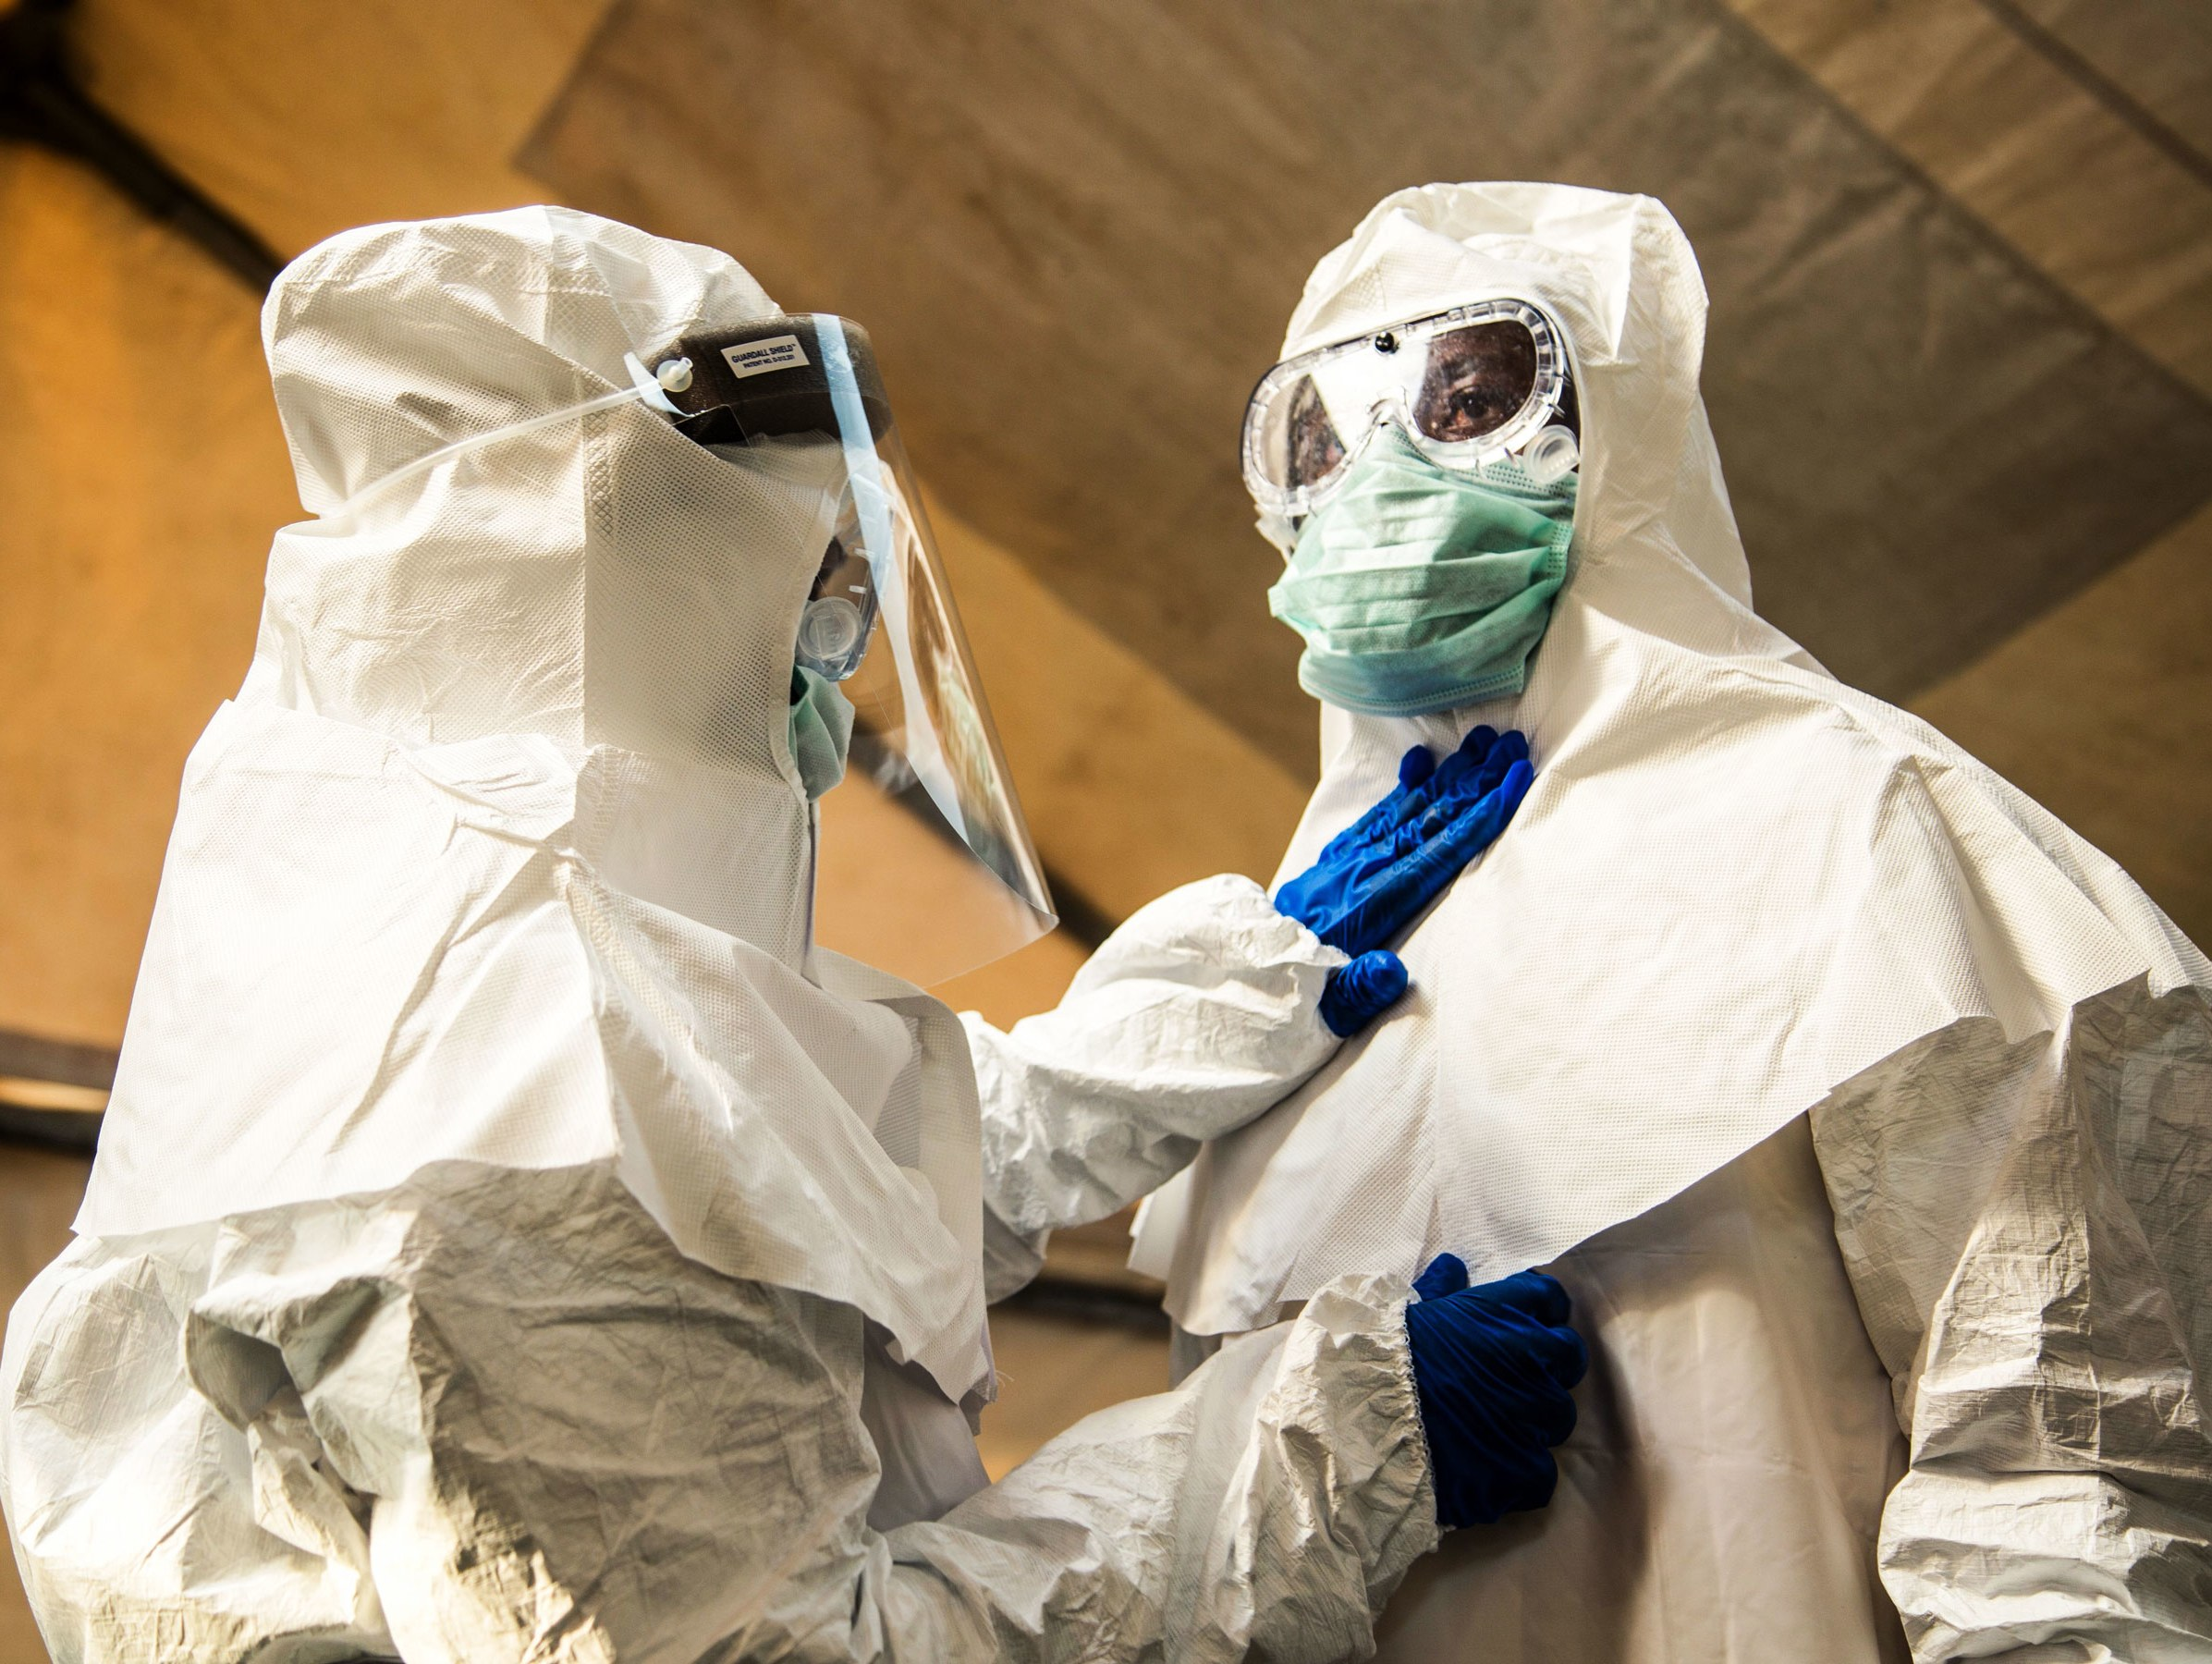 The Good News, Ebola Outbreak Slowing Down with Vaccine